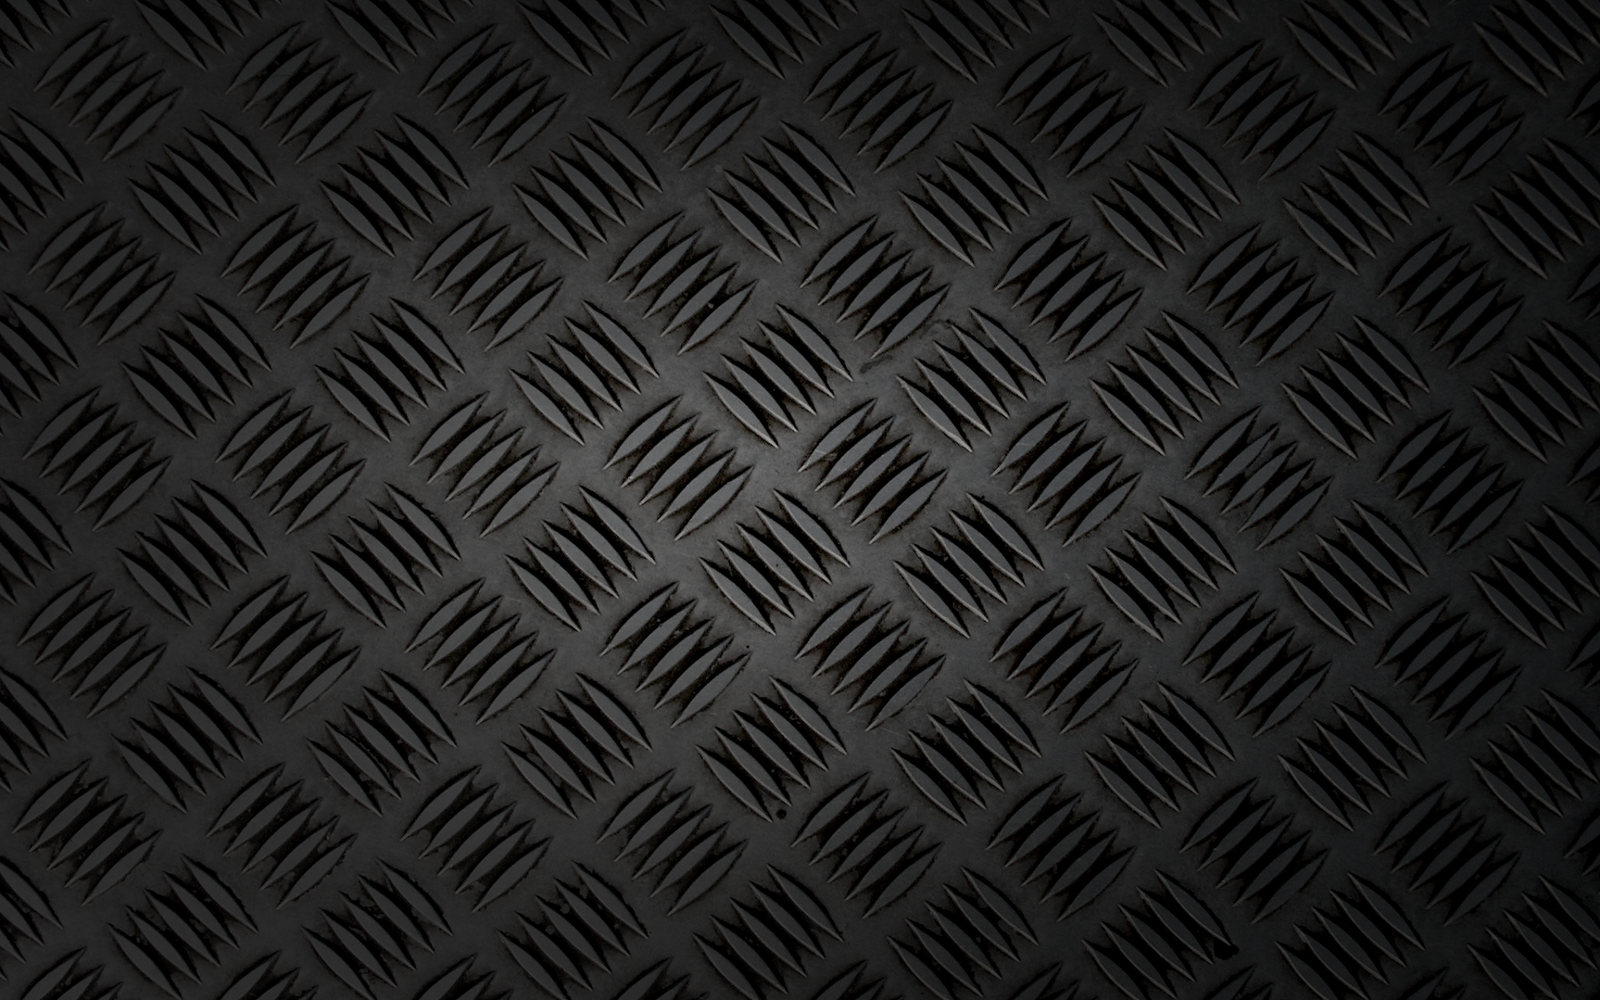 Black And Silver Wallpaper Designs 8 Background